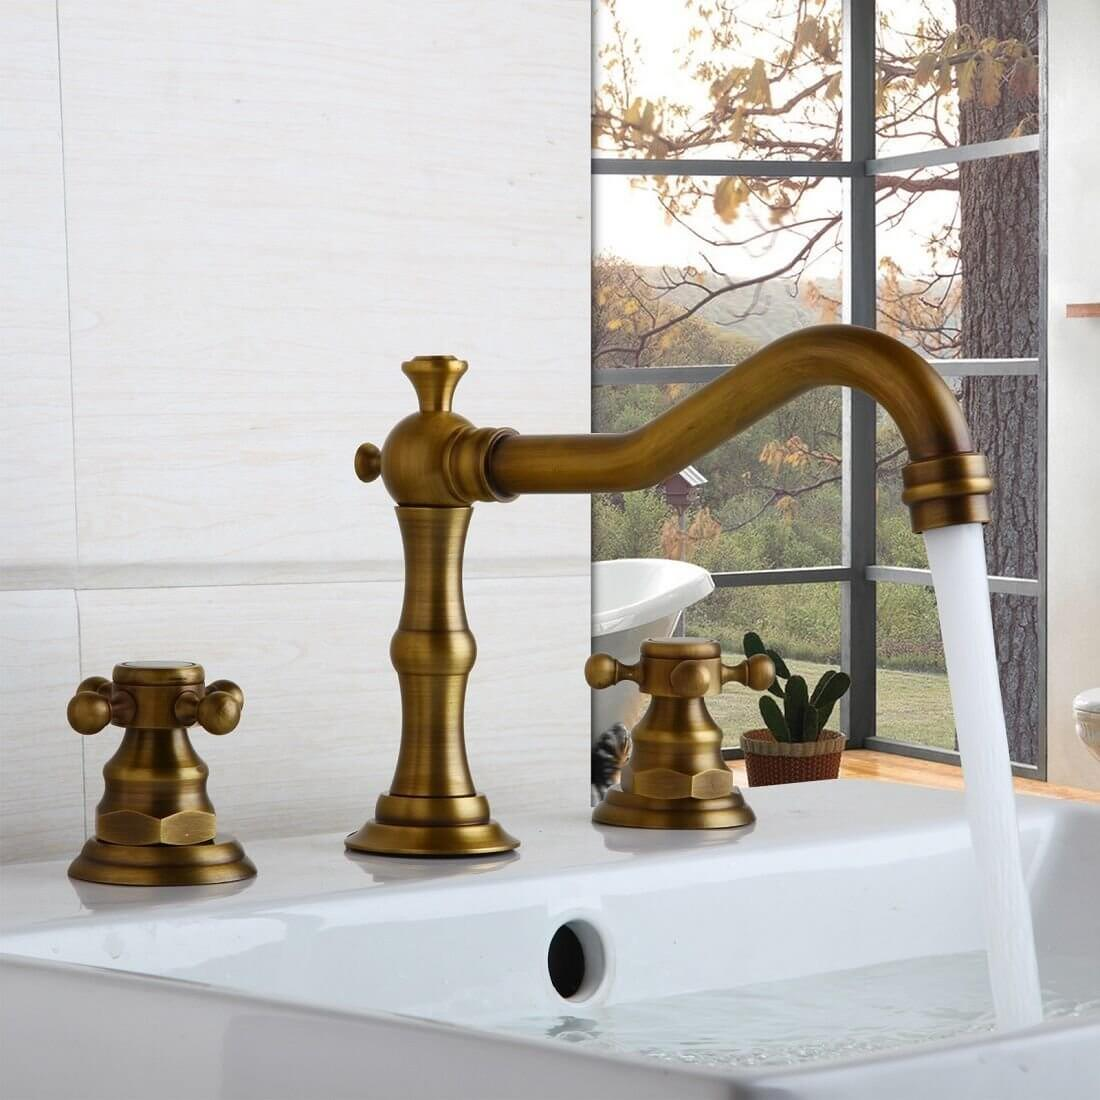 Even the faucet can stand an upgrade